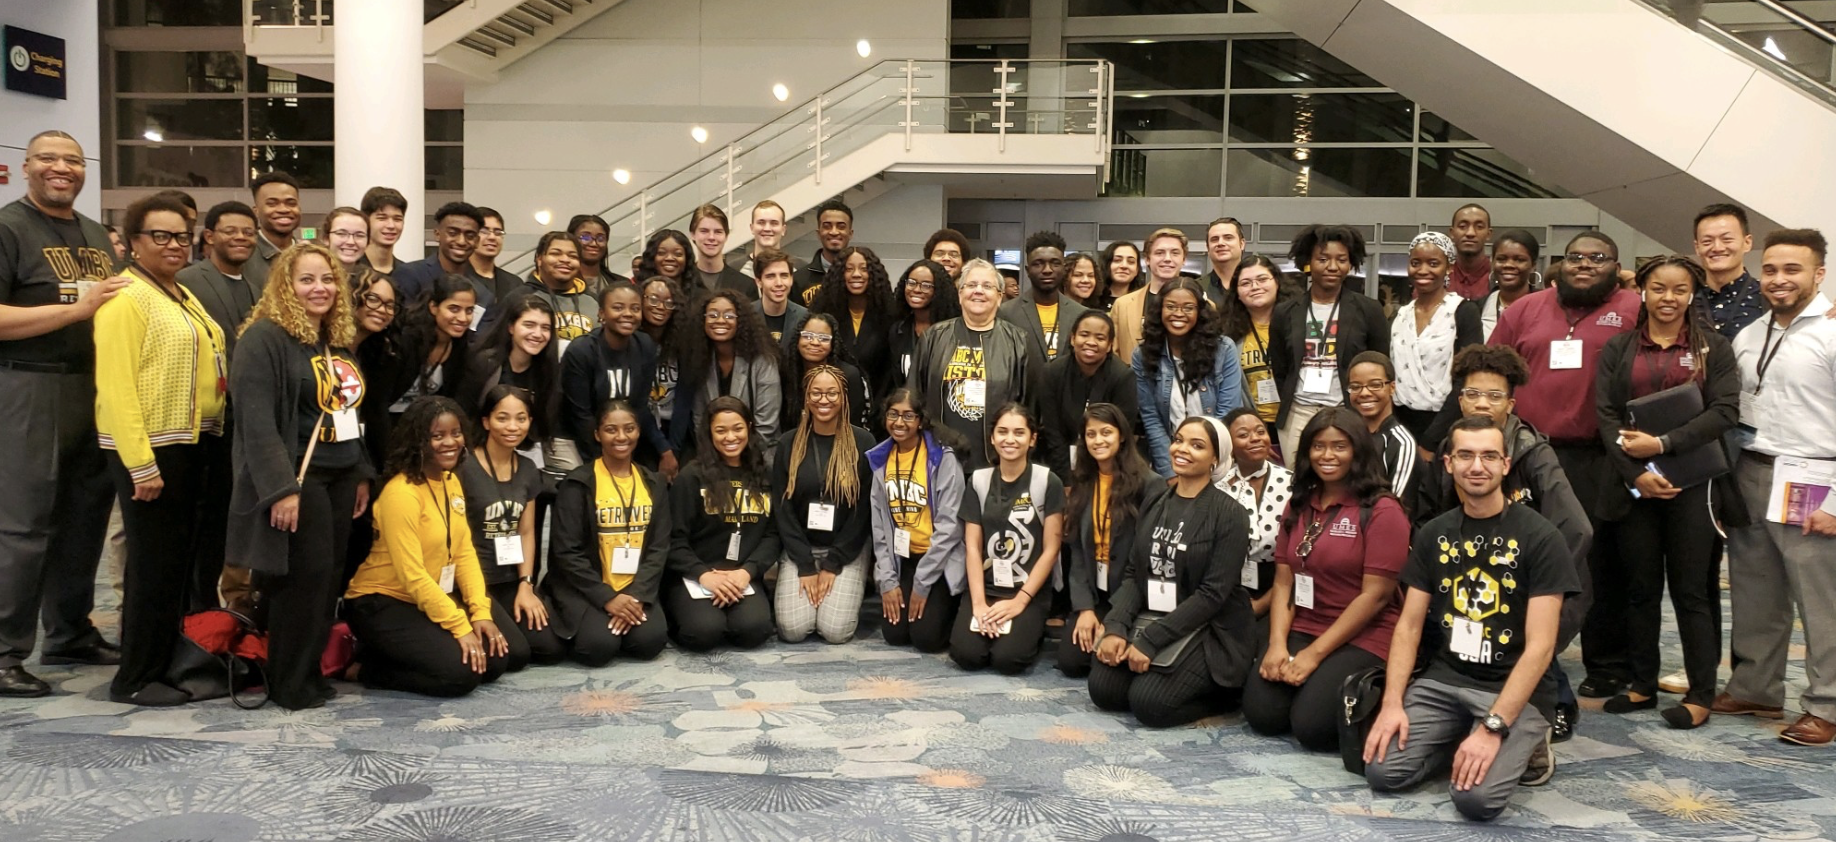 ABRCMS 2019 in Anaheim, California